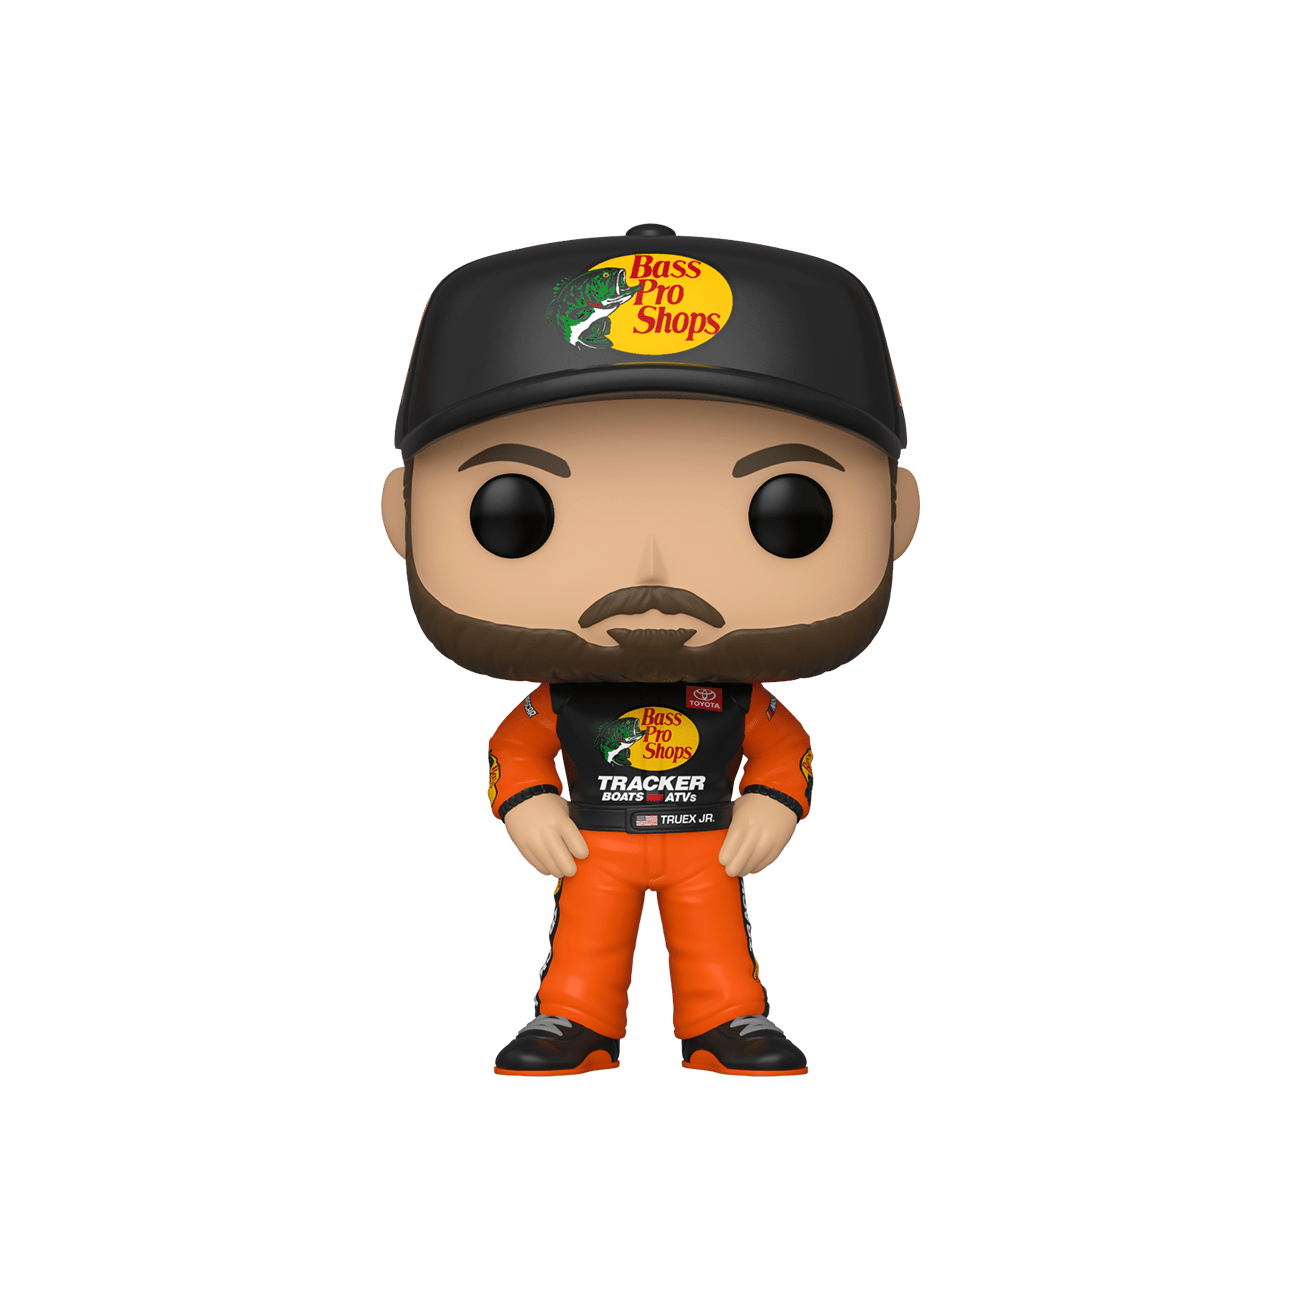 PRE-ORDER NASCAR - Martin True Jr Pop! Vinyl Figure